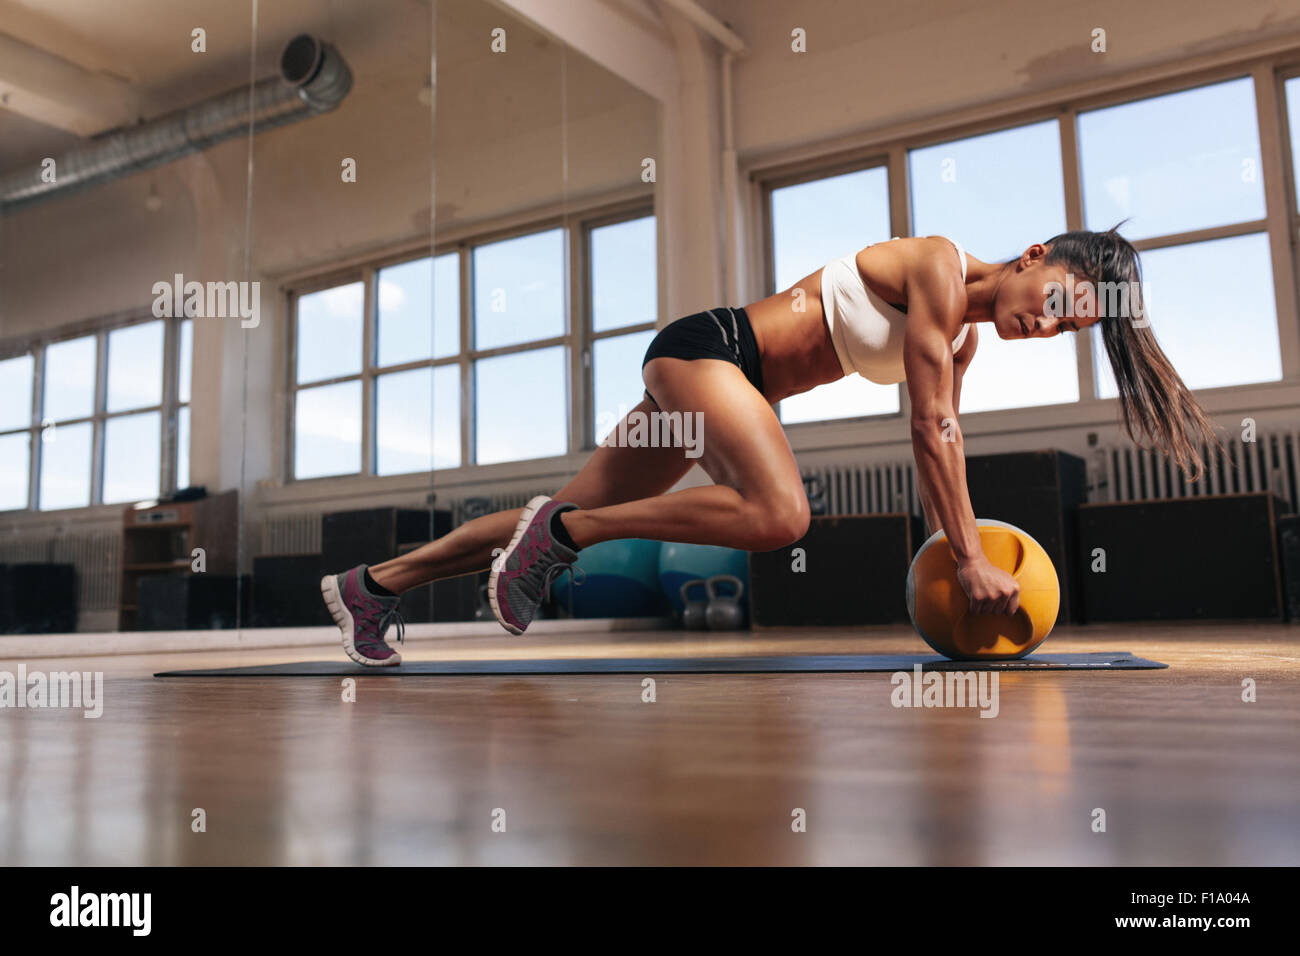 Portrait of a fit and muscular woman doing intense core workout with kettlebell in gym. Female exercising at crossfit - Stock Image